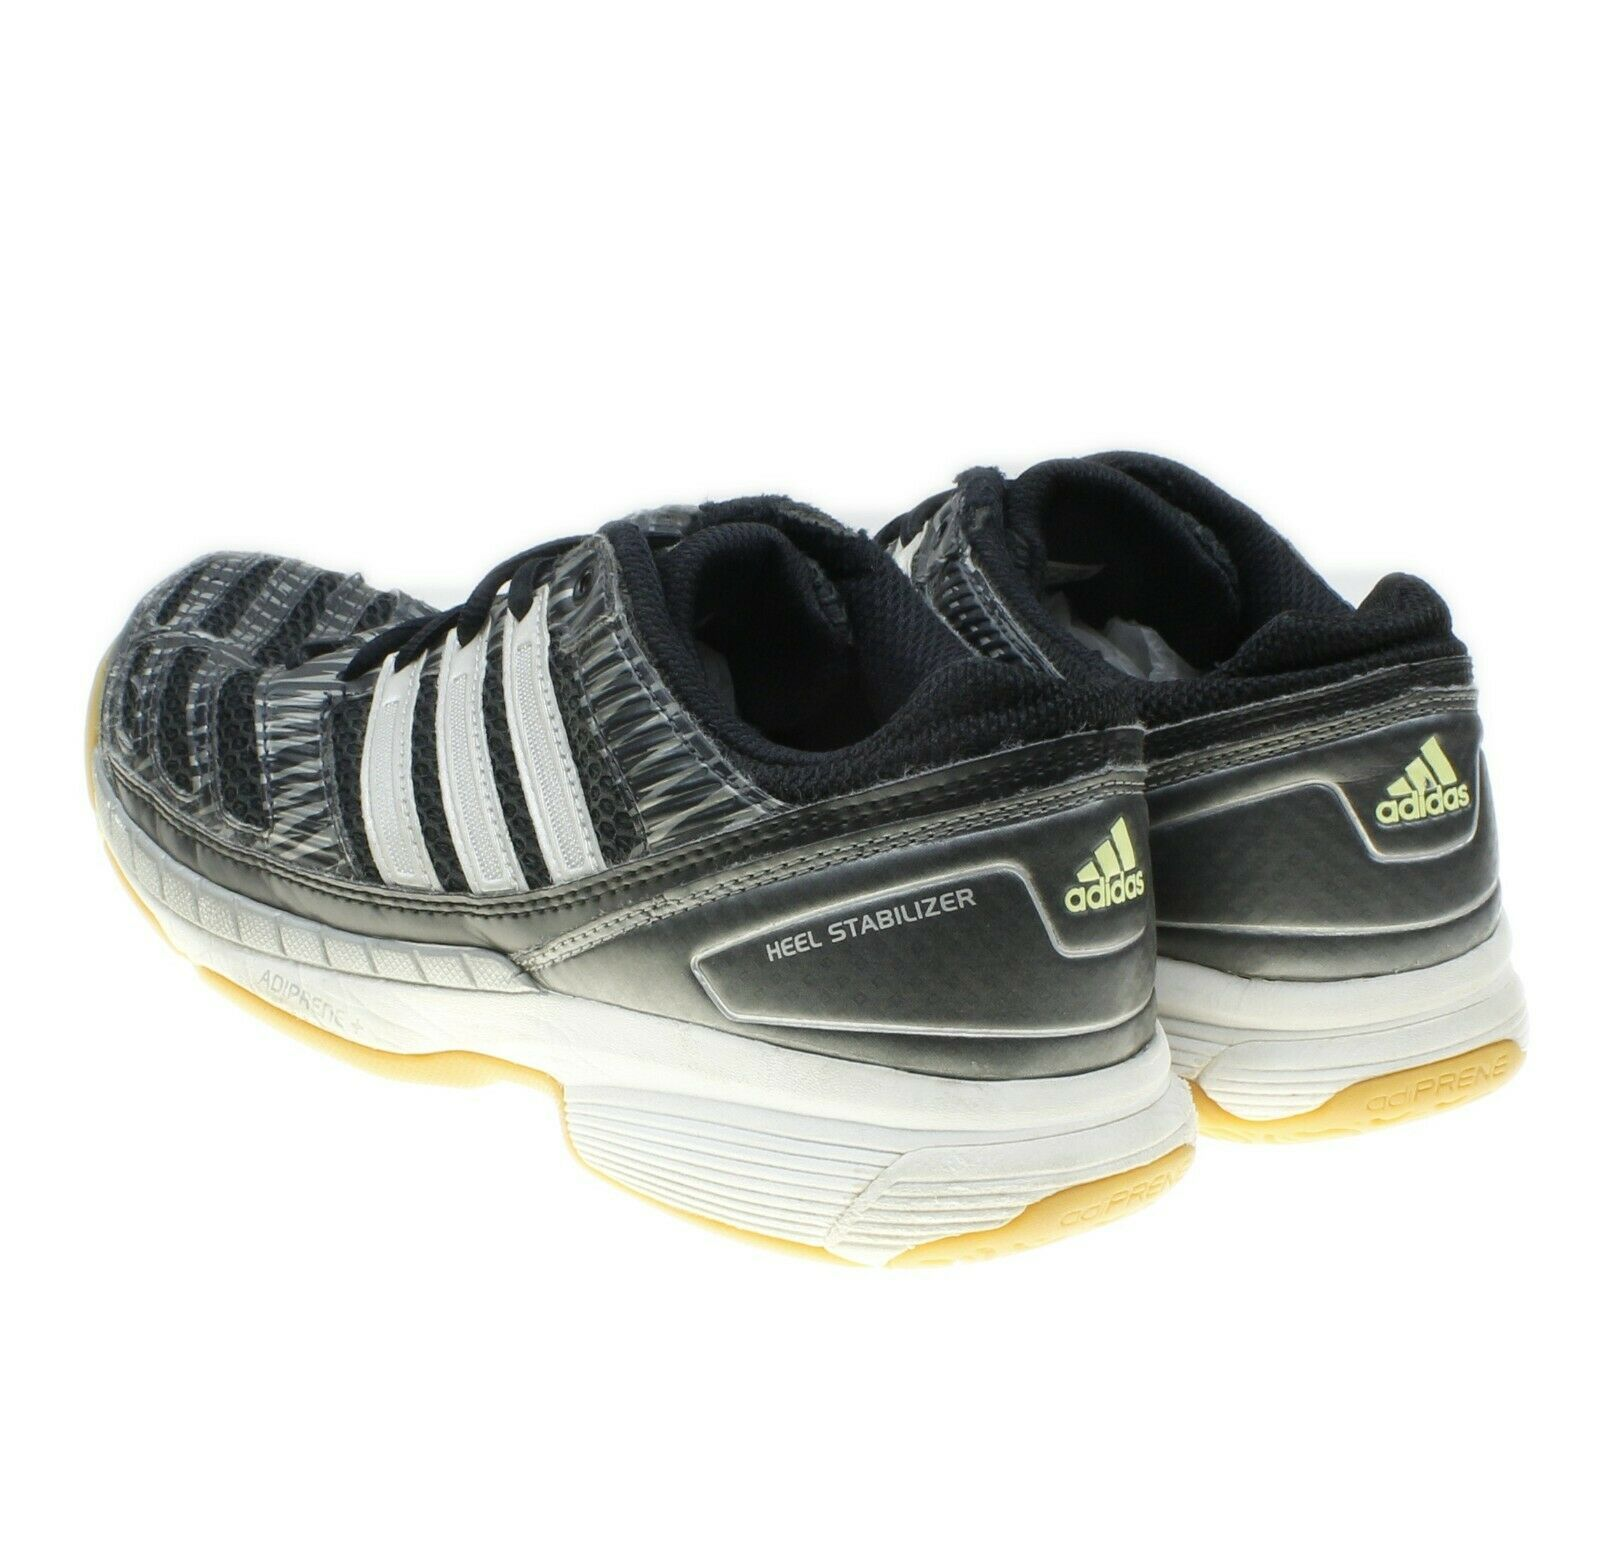 Adidas Adiprene Traxion Womens Gray Running Shoes Sneakers Size 8